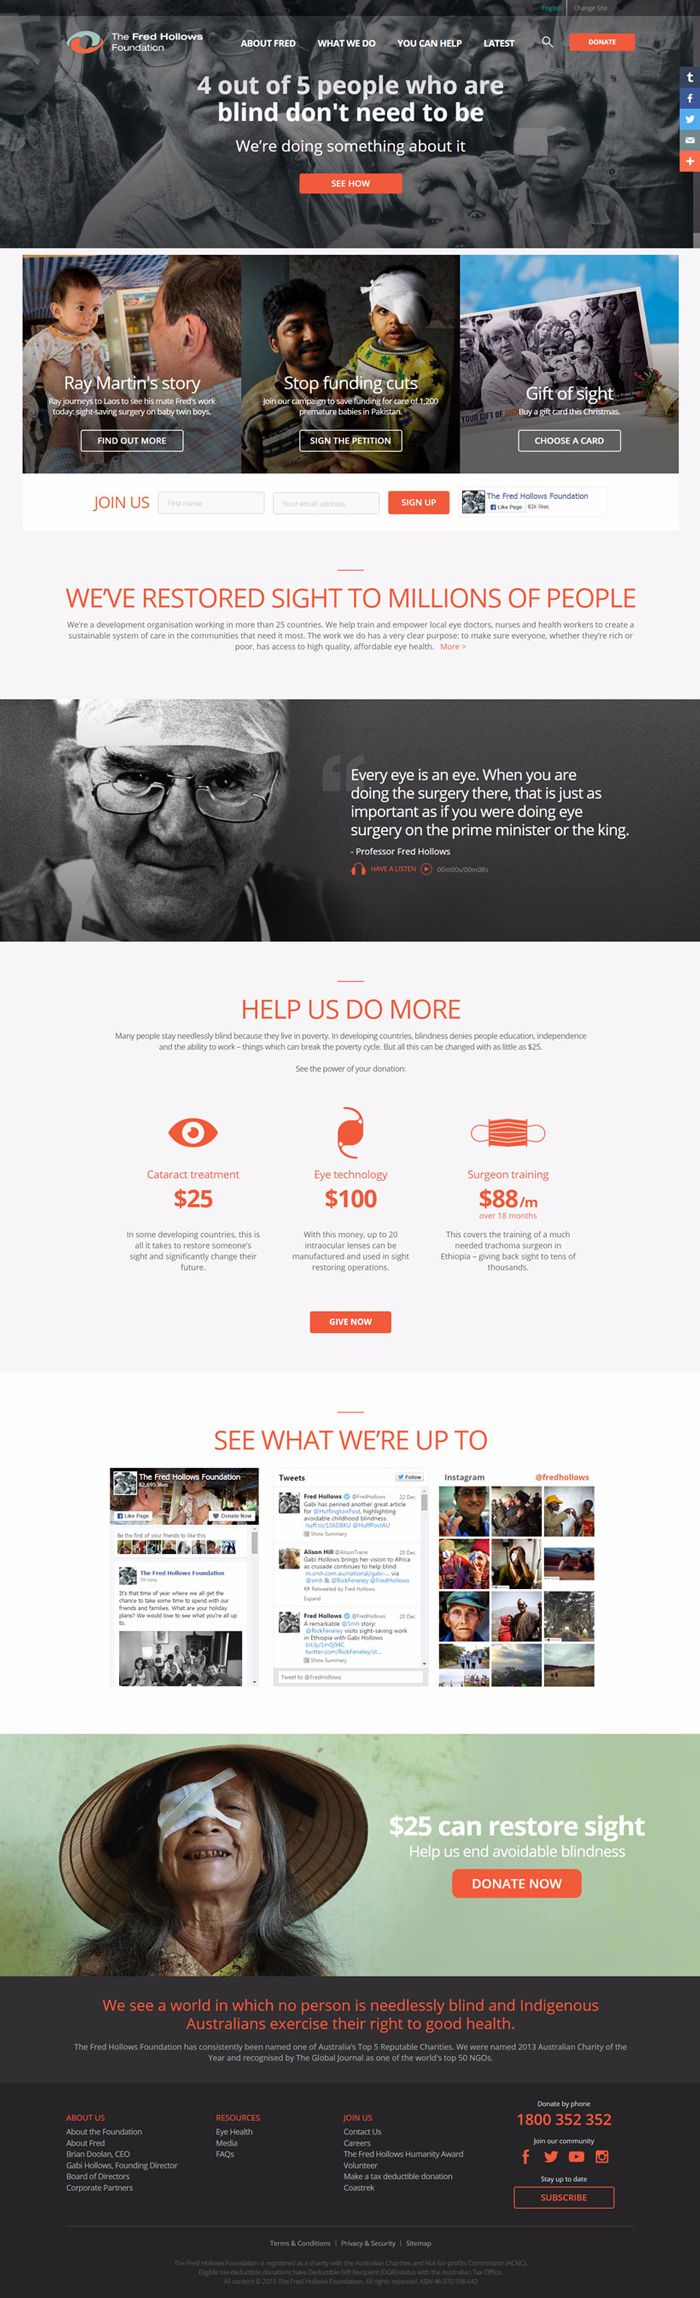 35 Best Charity And Non Profit Websites Inspiration Designyep Charity Charity Websites Website Design Inspiration